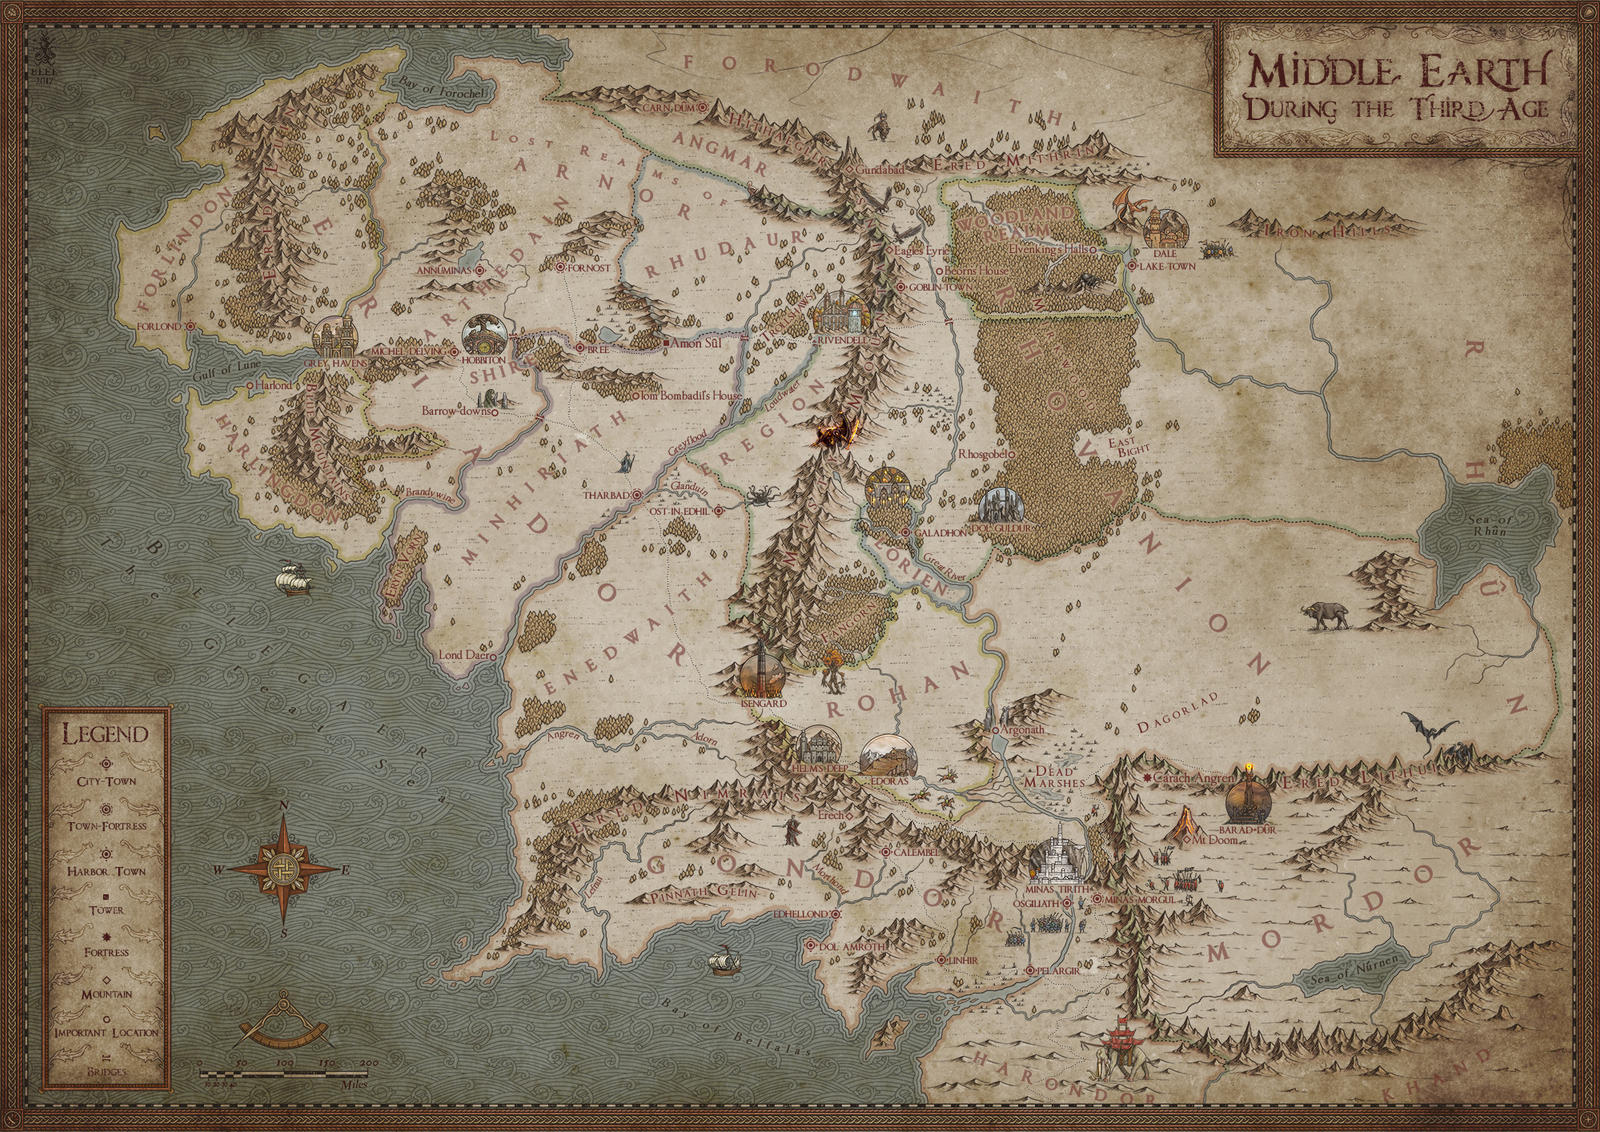 Middle Earth Map High Resolution Map of the Middle Earth by MistyBeee on DeviantArt